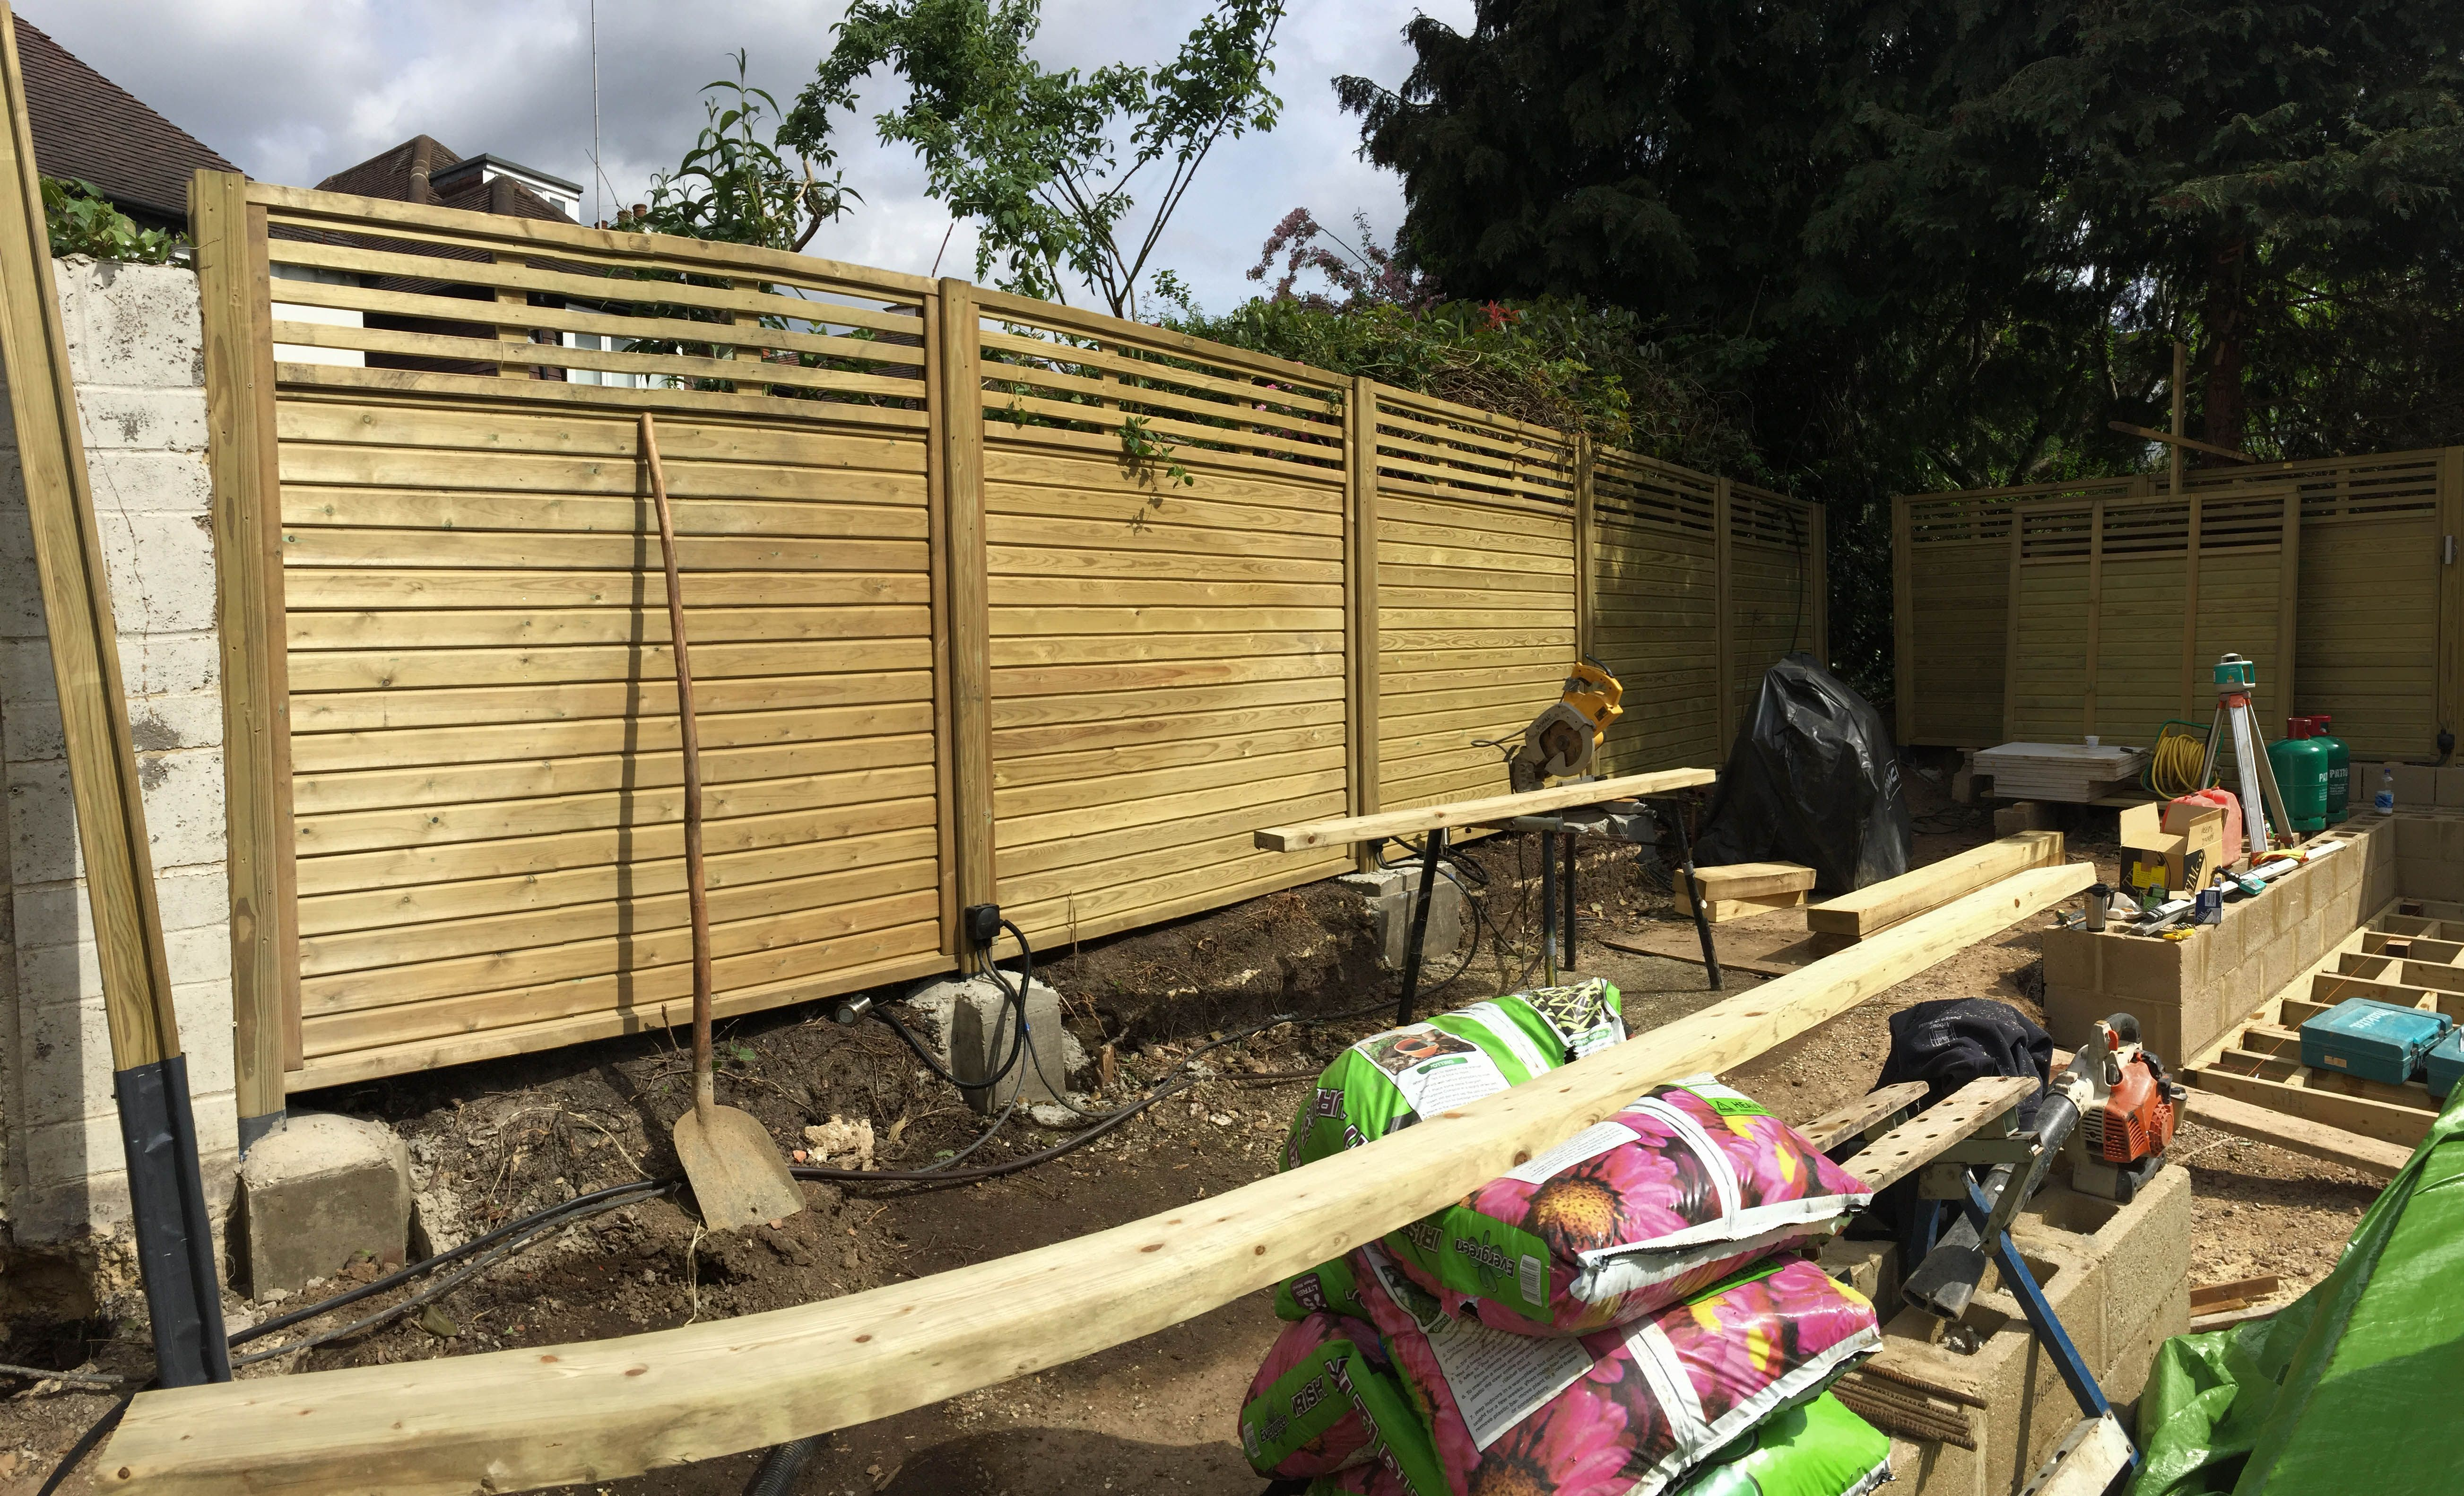 Arbour Design U0026 Build Shares The Results Of Their Fantastic Transformation  Project Featuring Jacksons Canterbury Combi Fence Panels